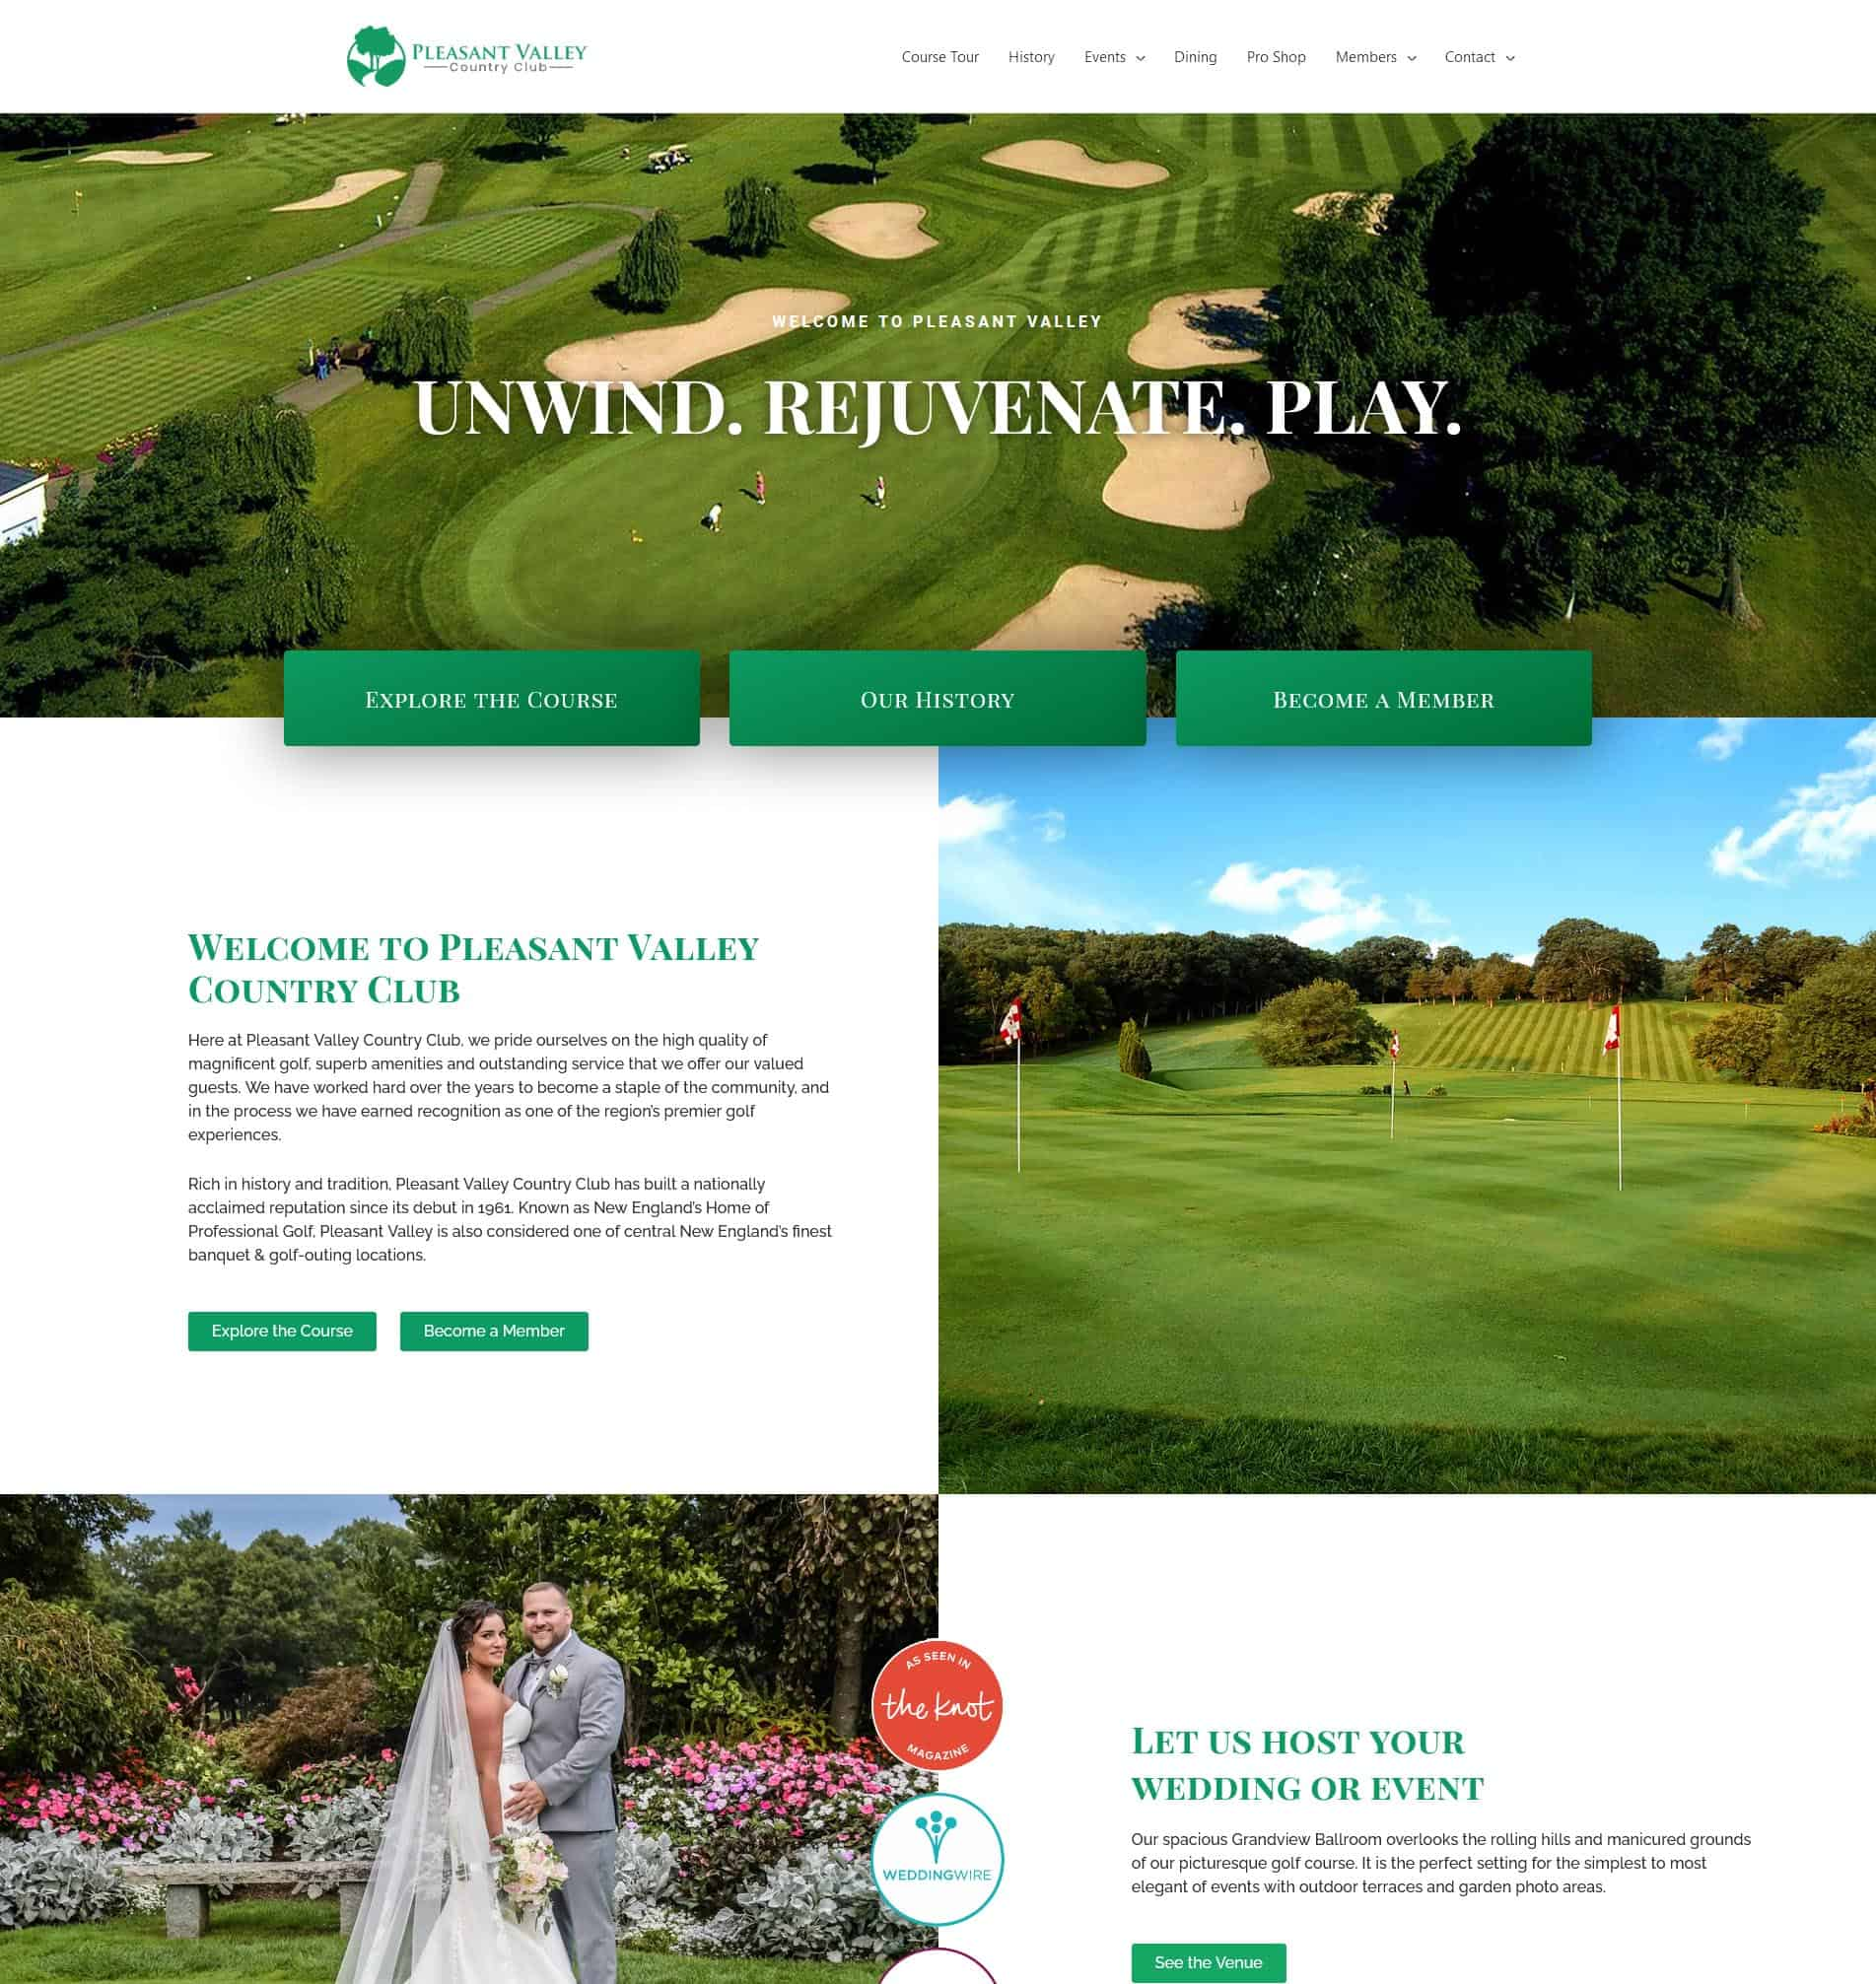 pleasant valley website after redesign